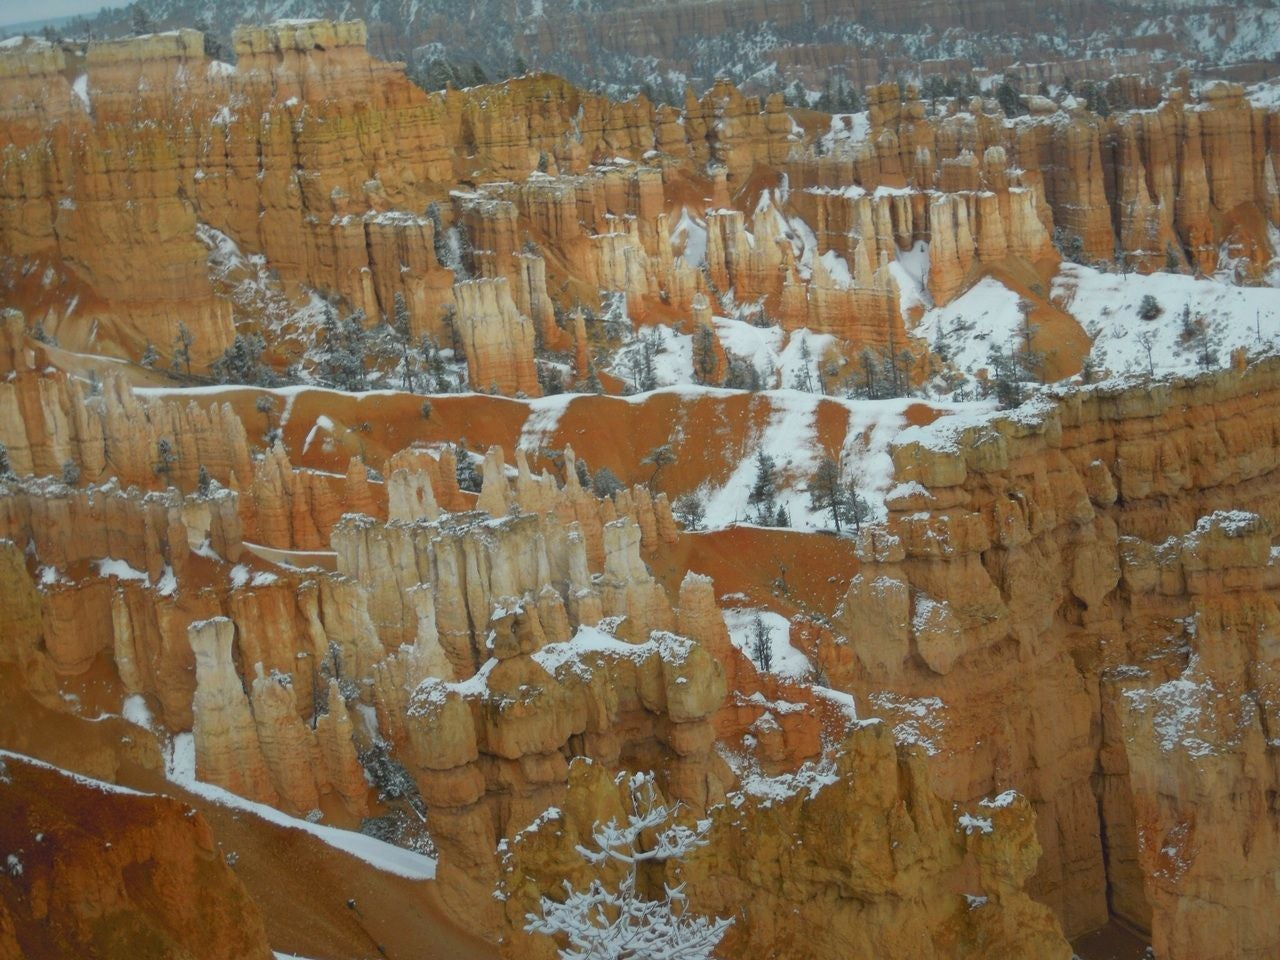 Pared en Bryce Canyon